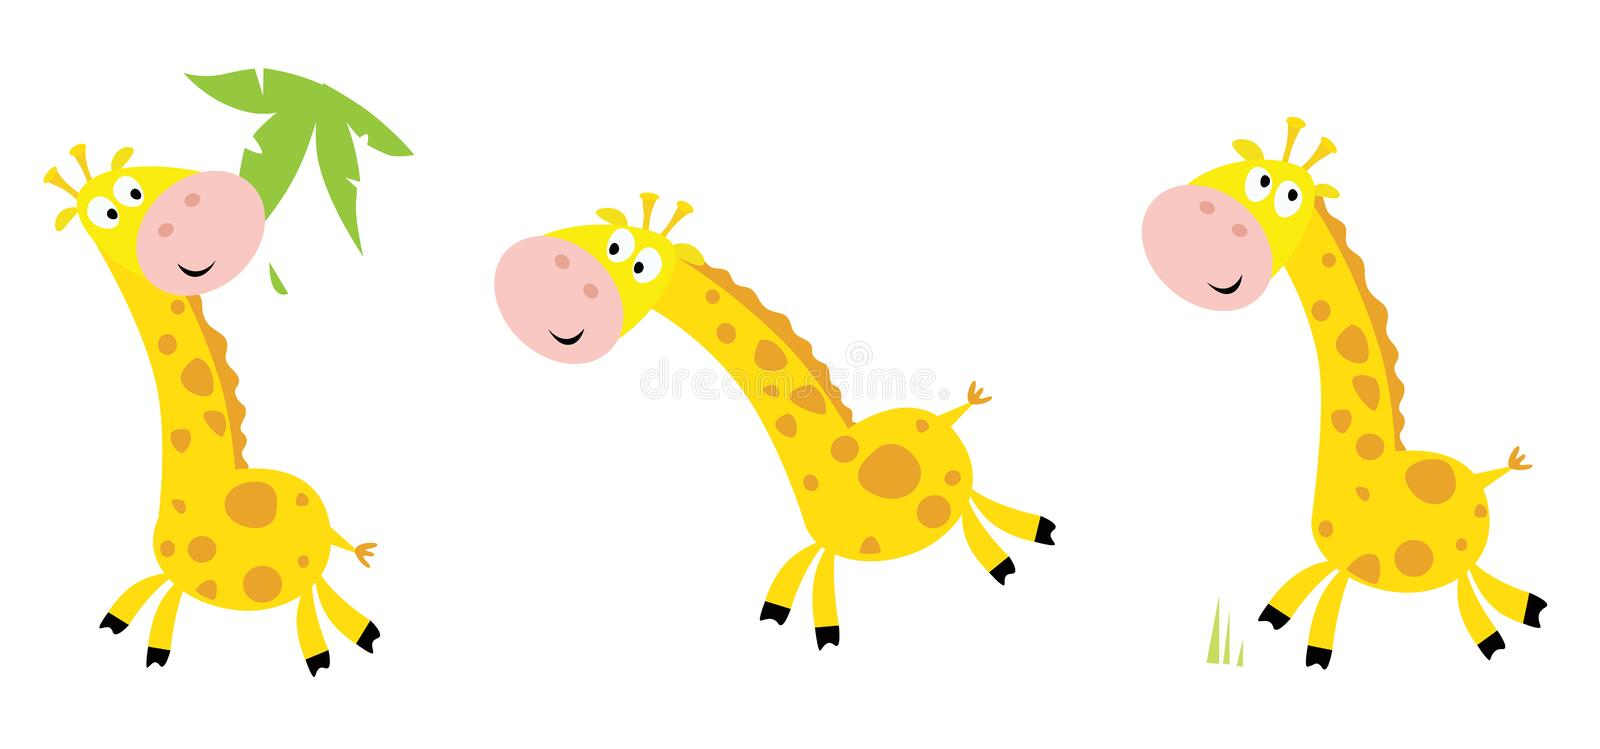 Download Yellow giraffe in 3 poses stock vector. Image of clip - 14862693